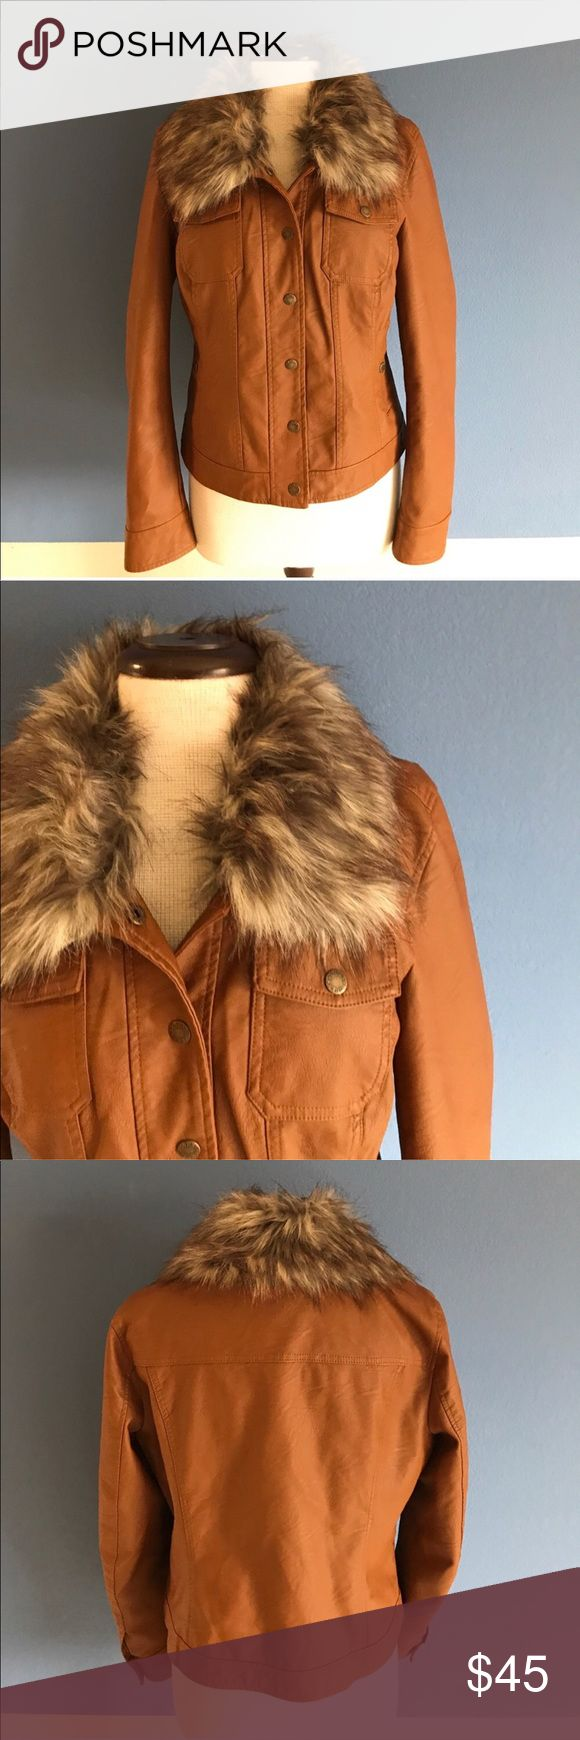 "Guess Faux Leather Jacket w/Detachable Collar You will look amazing in this jacket!   The faux fur detailed collar give the jacket a fun and youthful look.  Pair with a turtleneck and jeans for a great outfit. Measurements (Flat): Length - 22.5""/Bust - 20""/Waist - 18.5"" Guess Jackets & Coats"